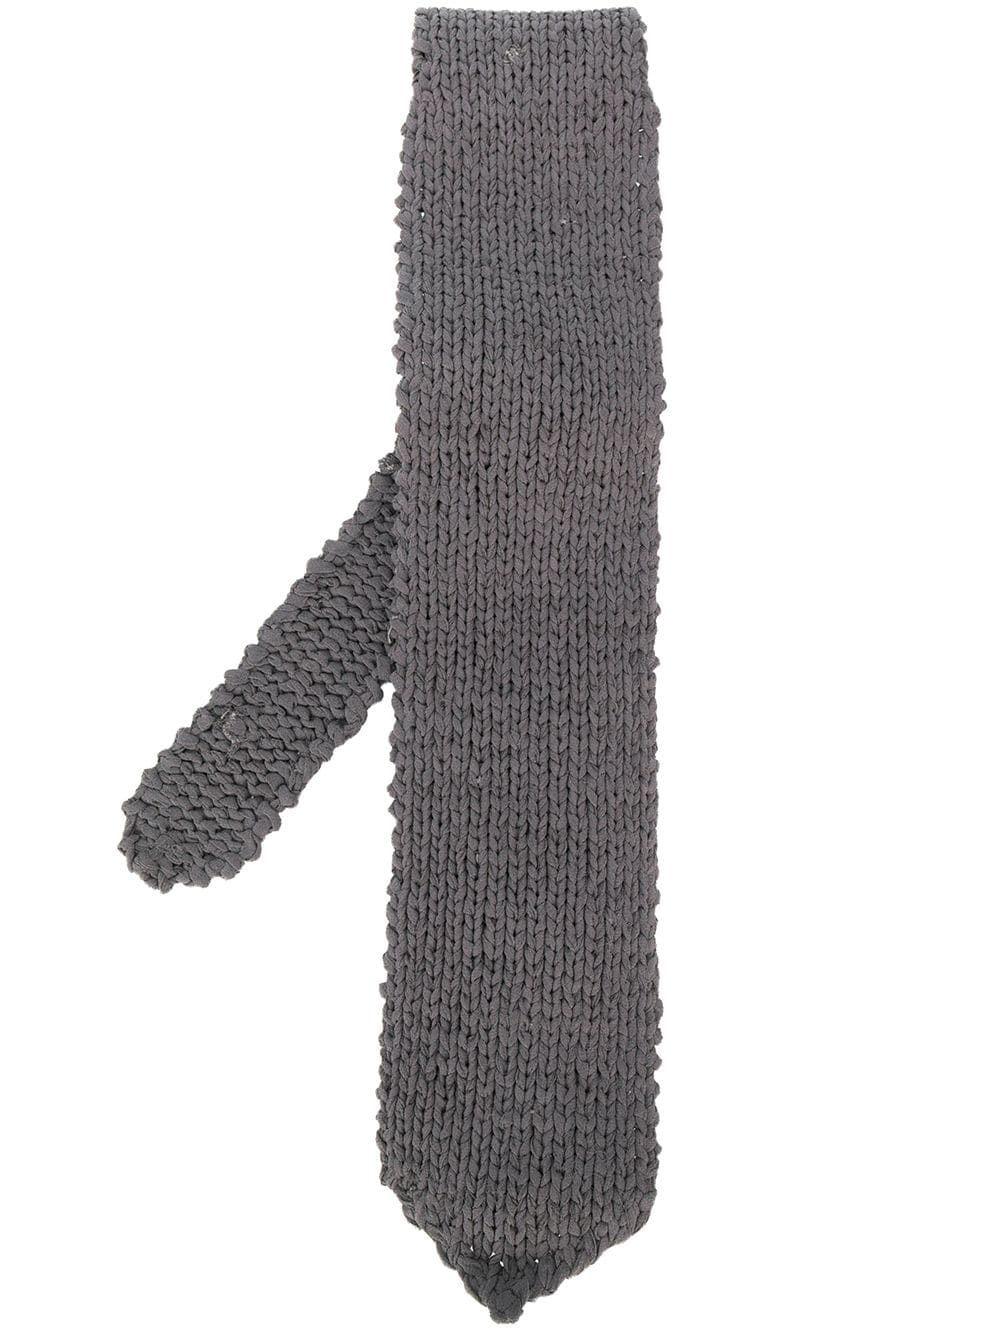 Gianfranco Ferré Pre-Owned 1990s knitted tie - Grey von Gianfranco Ferré Pre-Owned